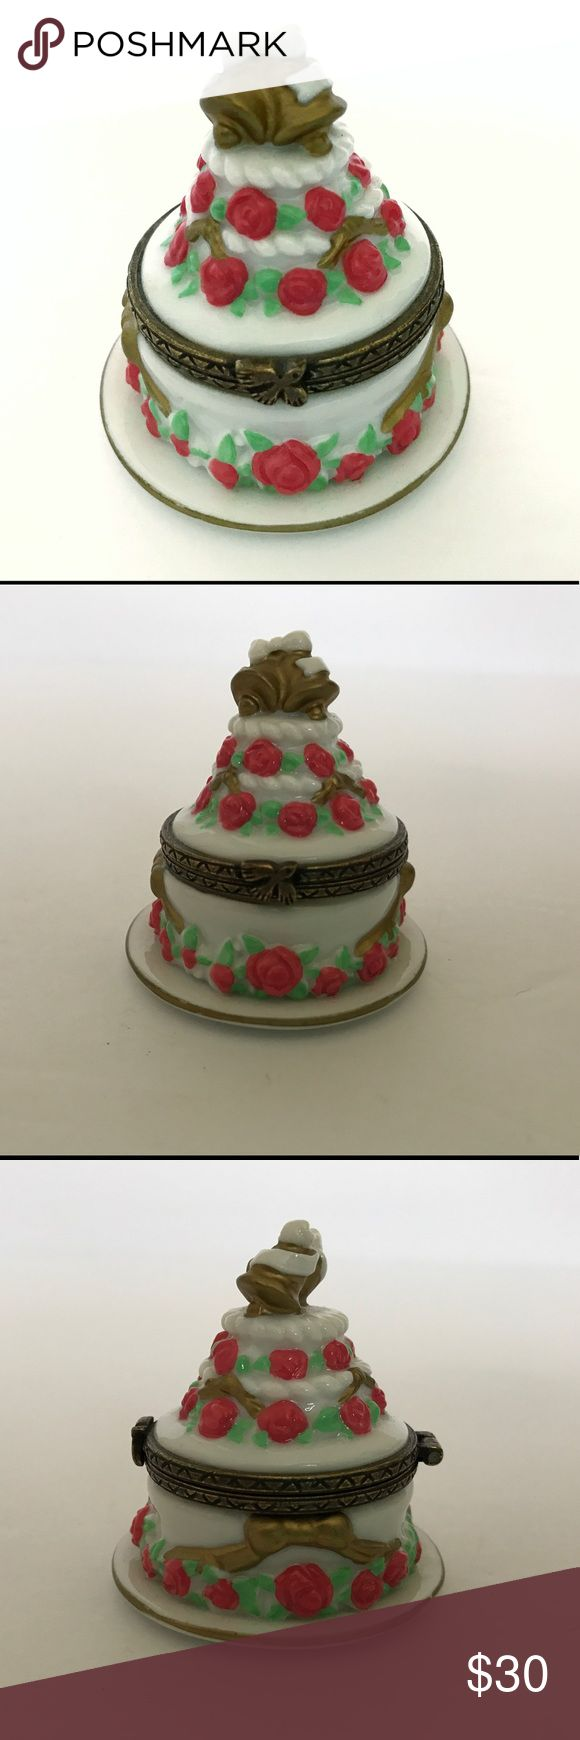 Small Jewelry Box Wedding Cake Shaped Pill Trinket Cute little trinket/jewelry/pill box shaped like a wedding cake. Excellent condition. Please let me know if you have any questions! Jewelry